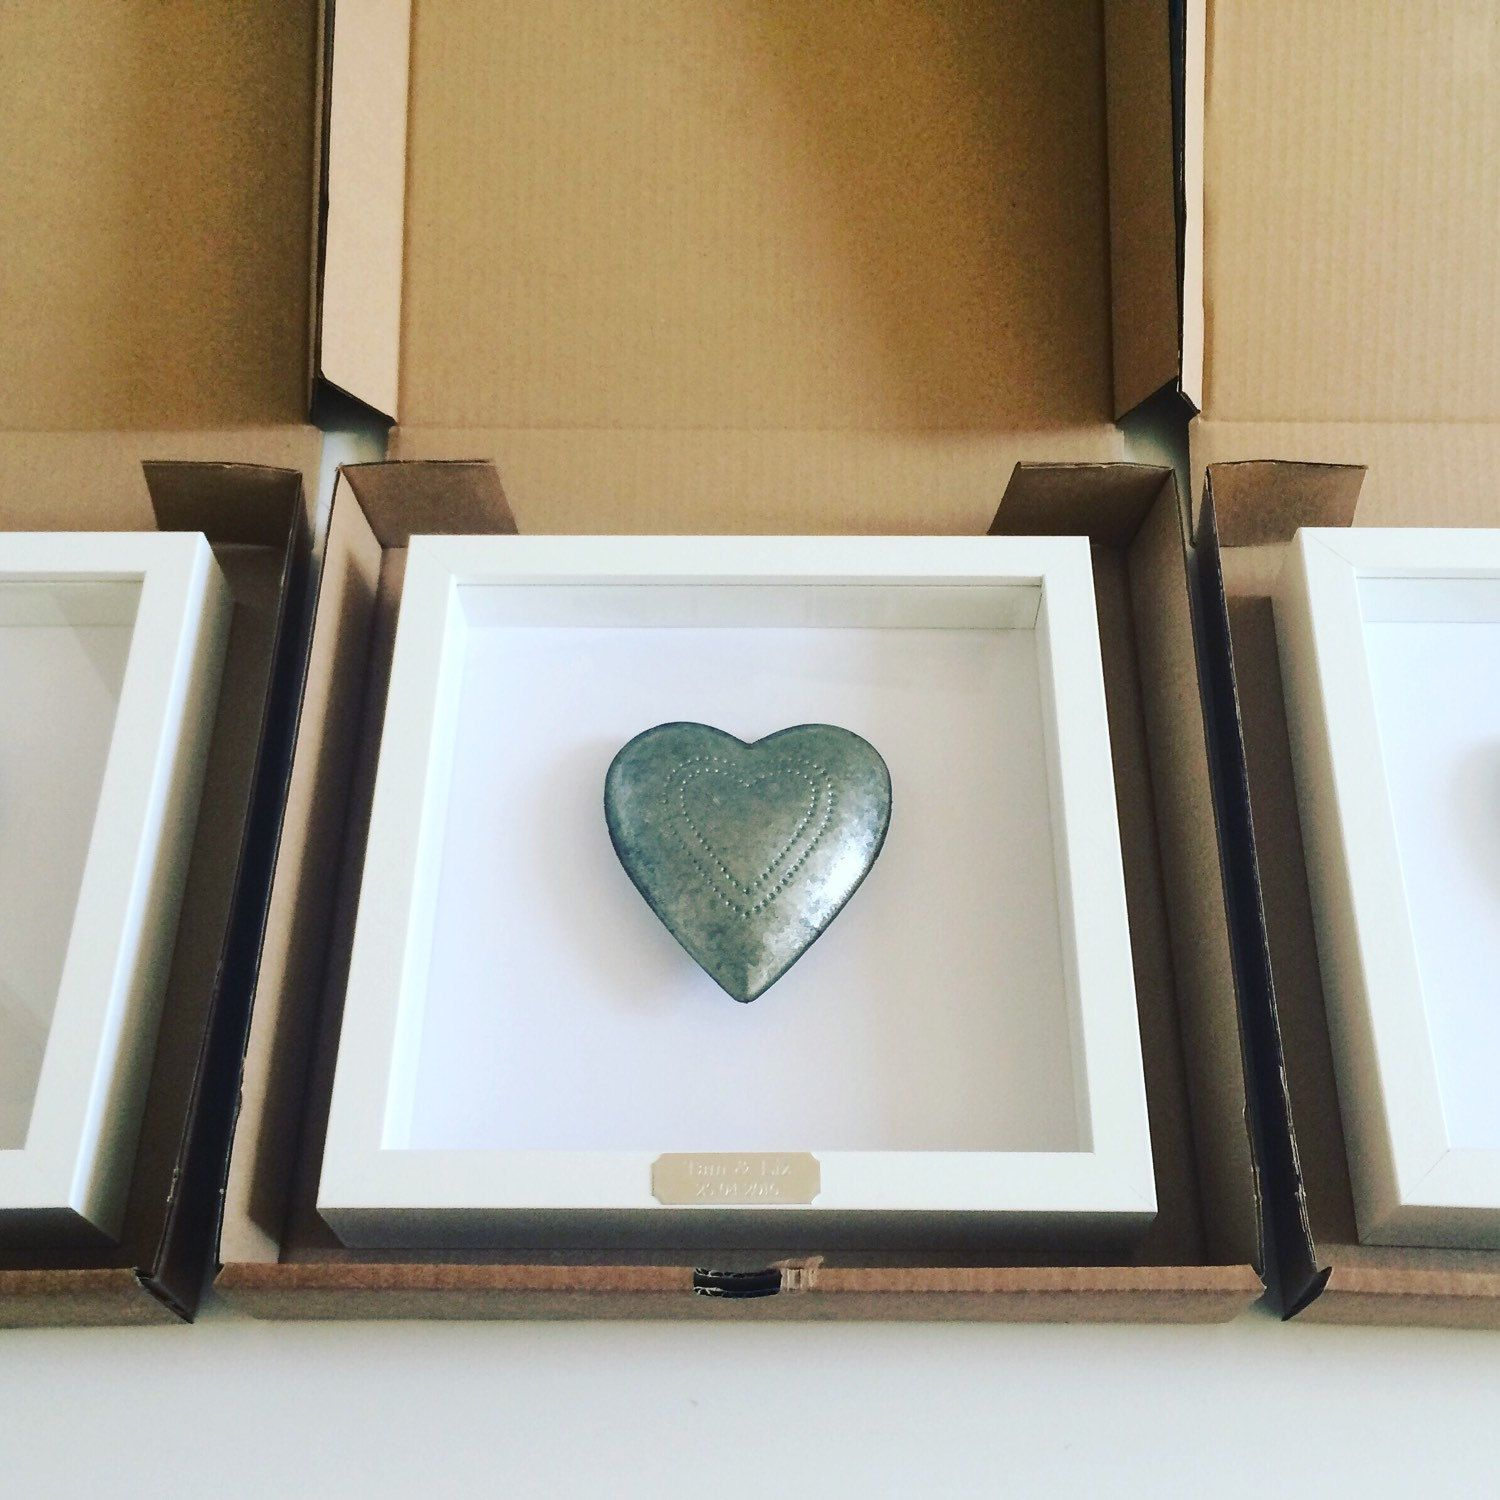 New Orders Ready To Go Tin Heart Wedding Anniversary Bespoke Silver Frame Design Interior Wh 10th Wedding Anniversary Gift 10th Anniversary Gifts Wedding Anniversary Gifts